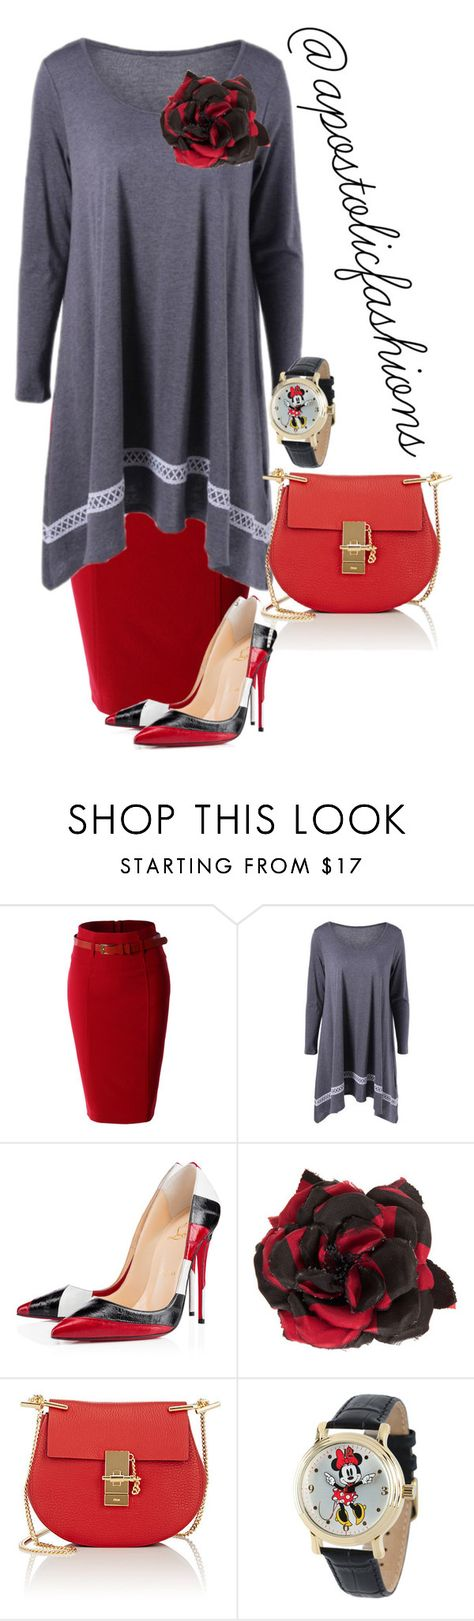 """Apostolic Fashions #1471"" by apostolicfashions on Polyvore featuring LE3NO, Christian Louboutin, Alessandra Rich, Chloé, Disney, modestlykay and modestlywhit"